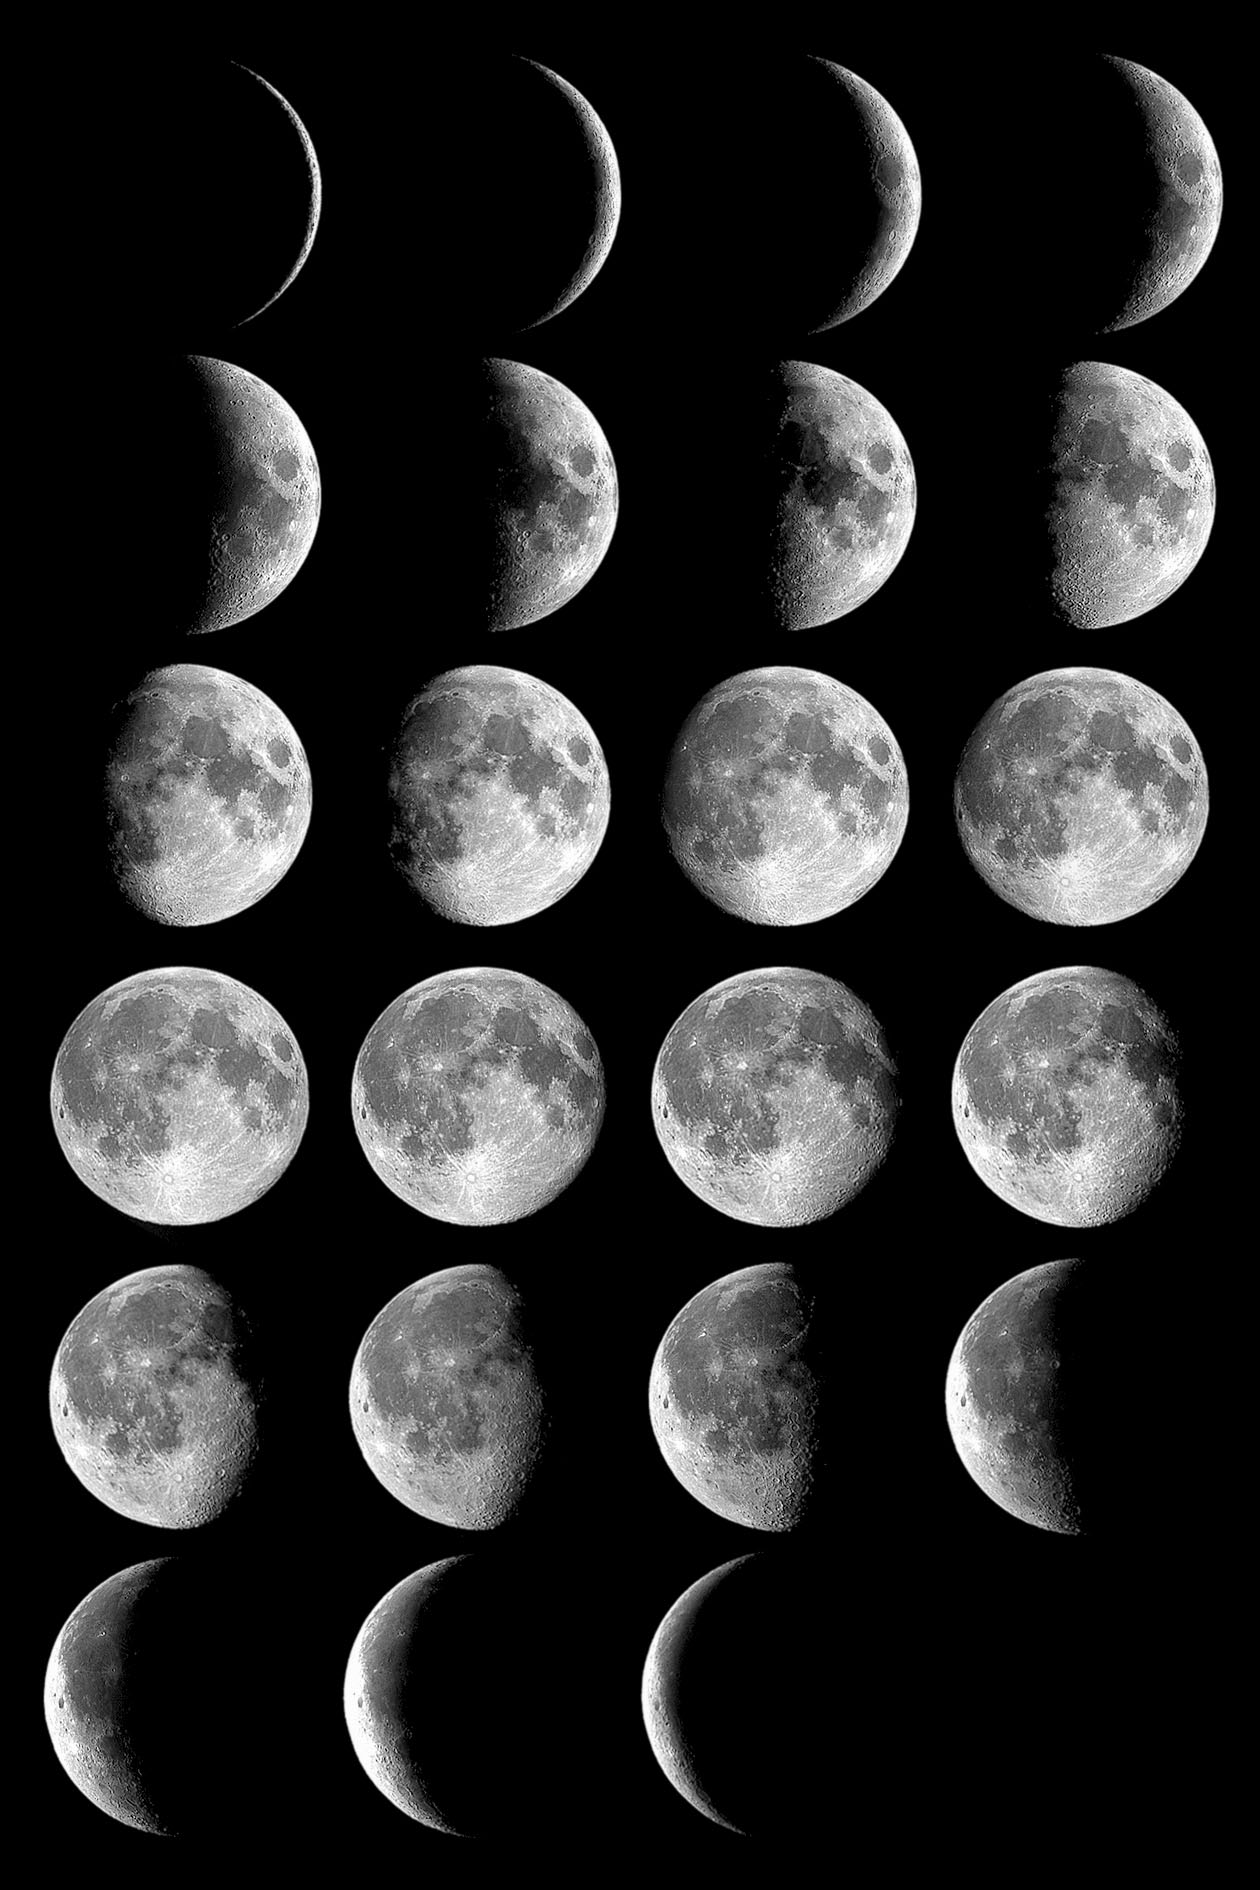 Observation Of The Moon